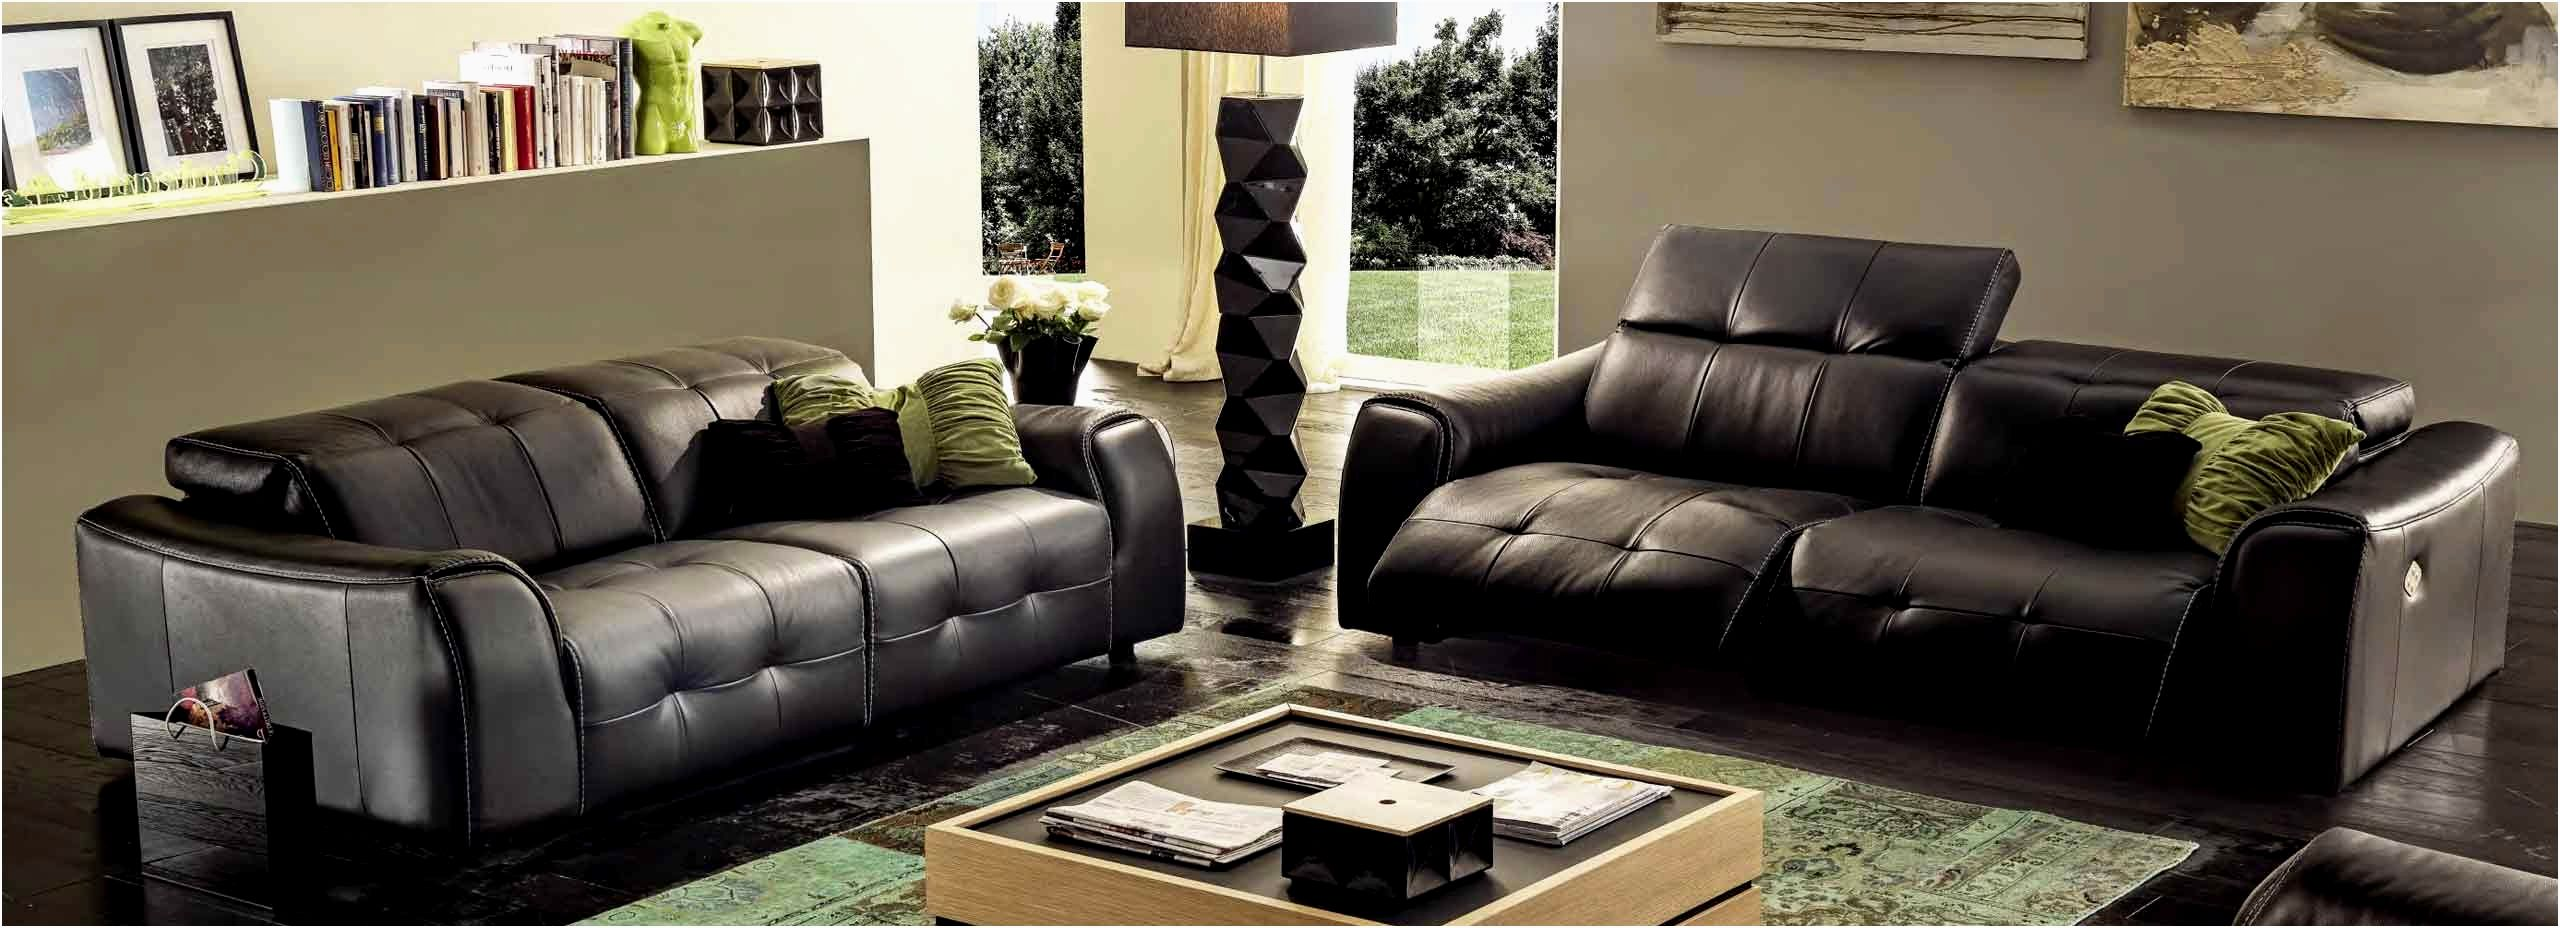 Chateau Dax Furniture Reviews: Stylish Chateau D Ax Sofa Plan